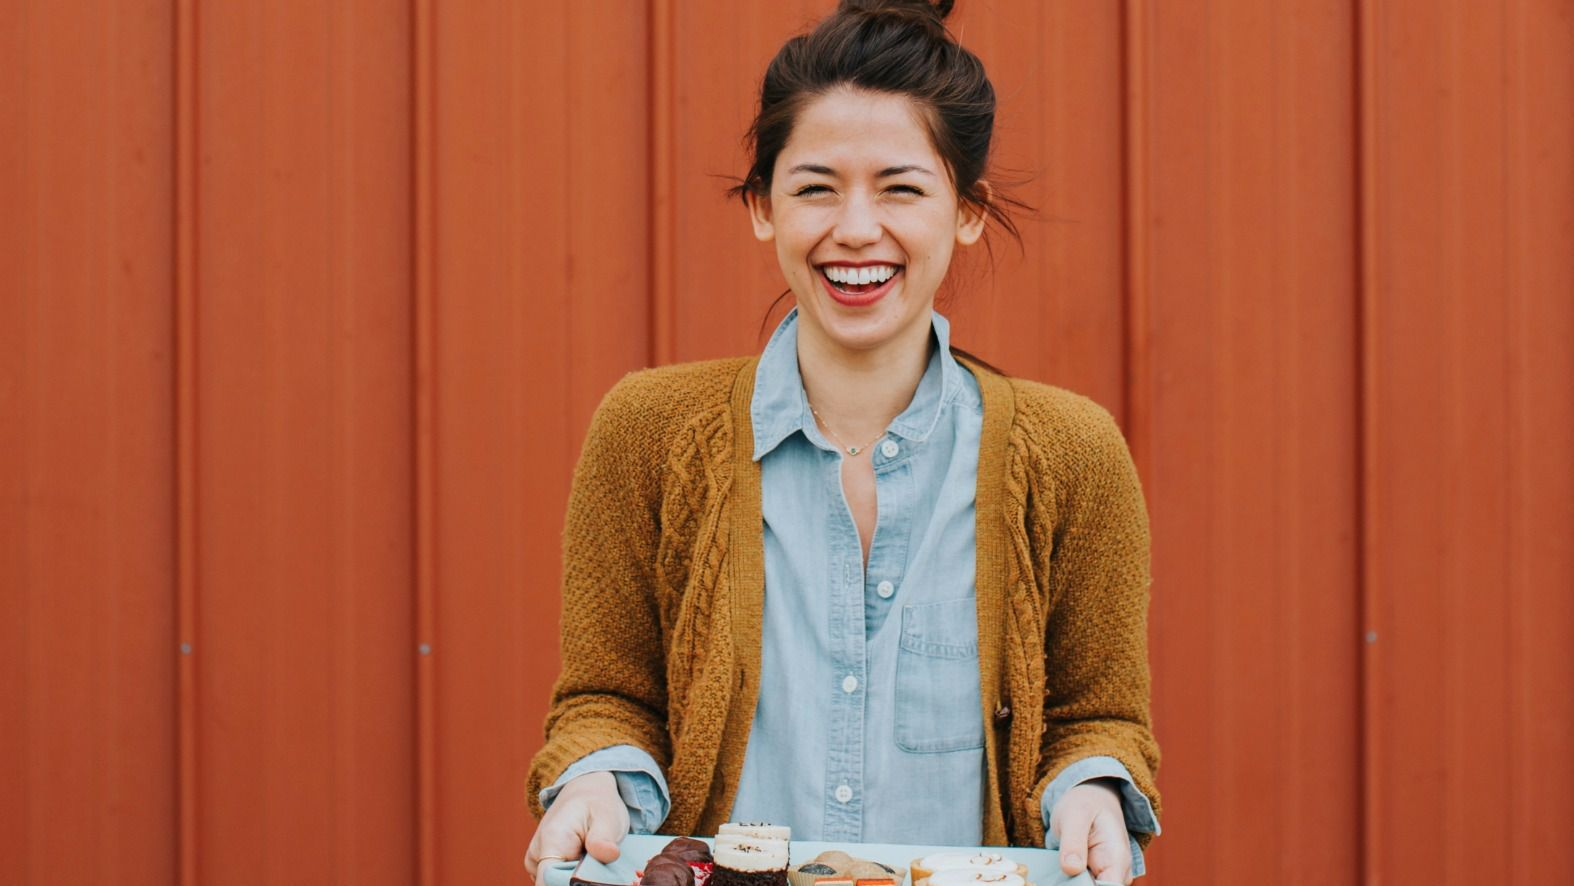 Popular blogger Molly Yeh came out with her first cookbook, 'Molly on the Range.'